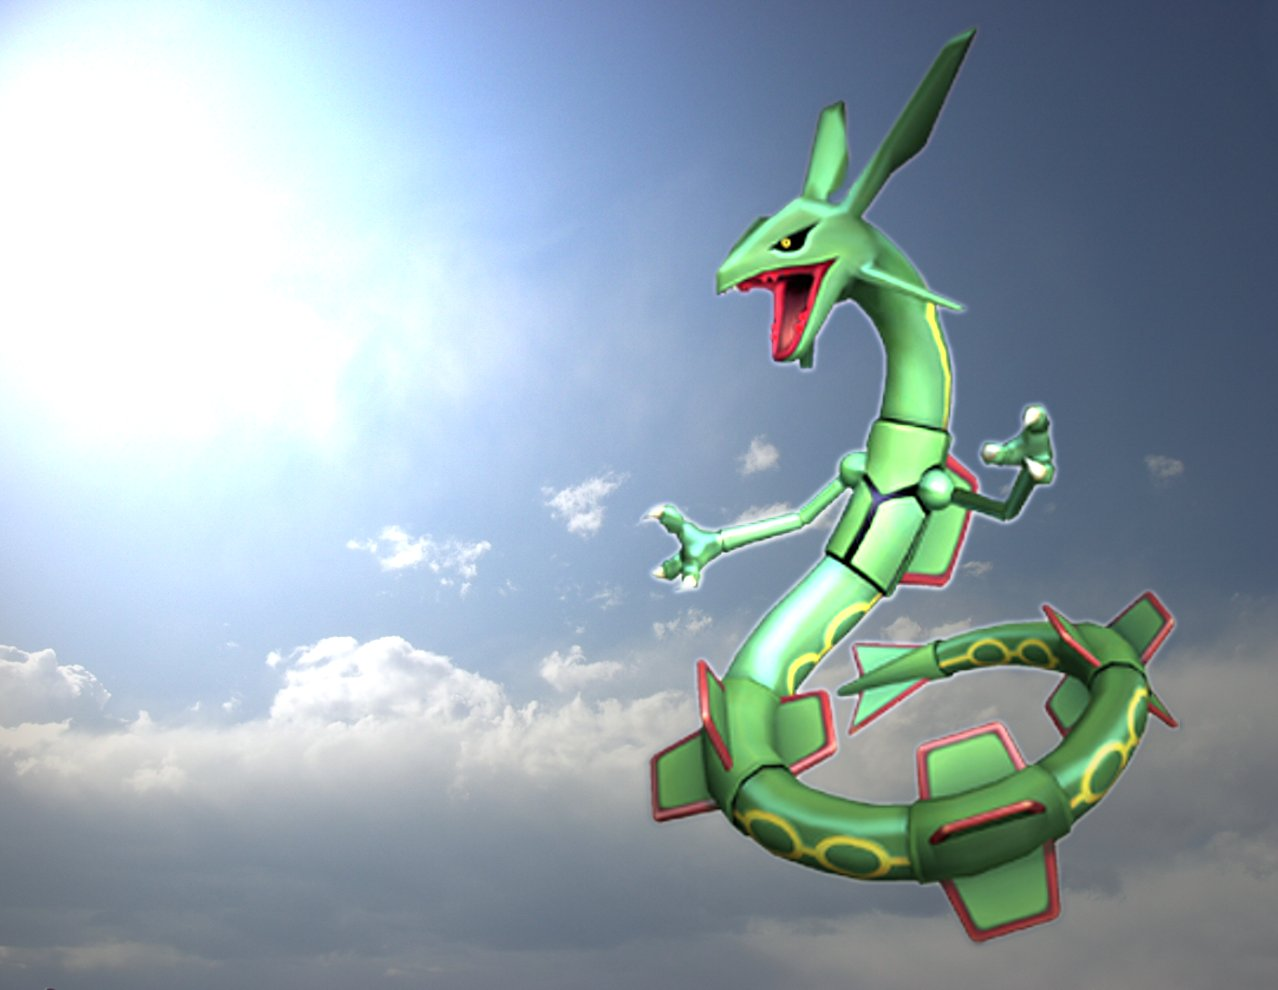 emerald rayquaza wallpapers - photo #32